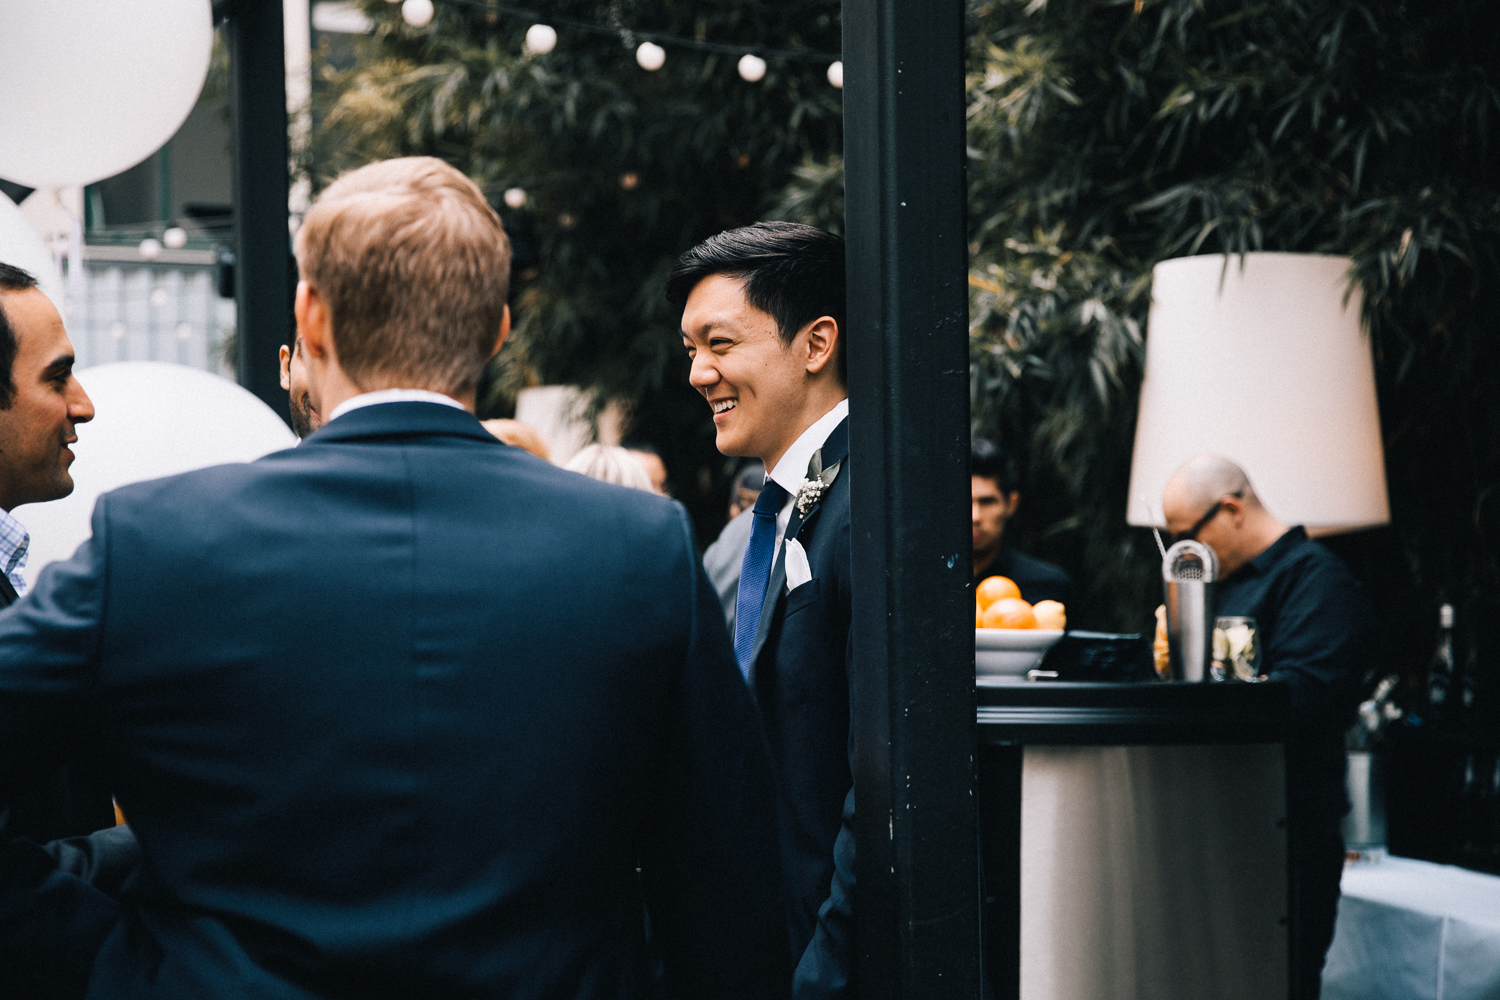 2019.06.01 Ana + Richard SF Wedding Blog Photos -3986.jpg